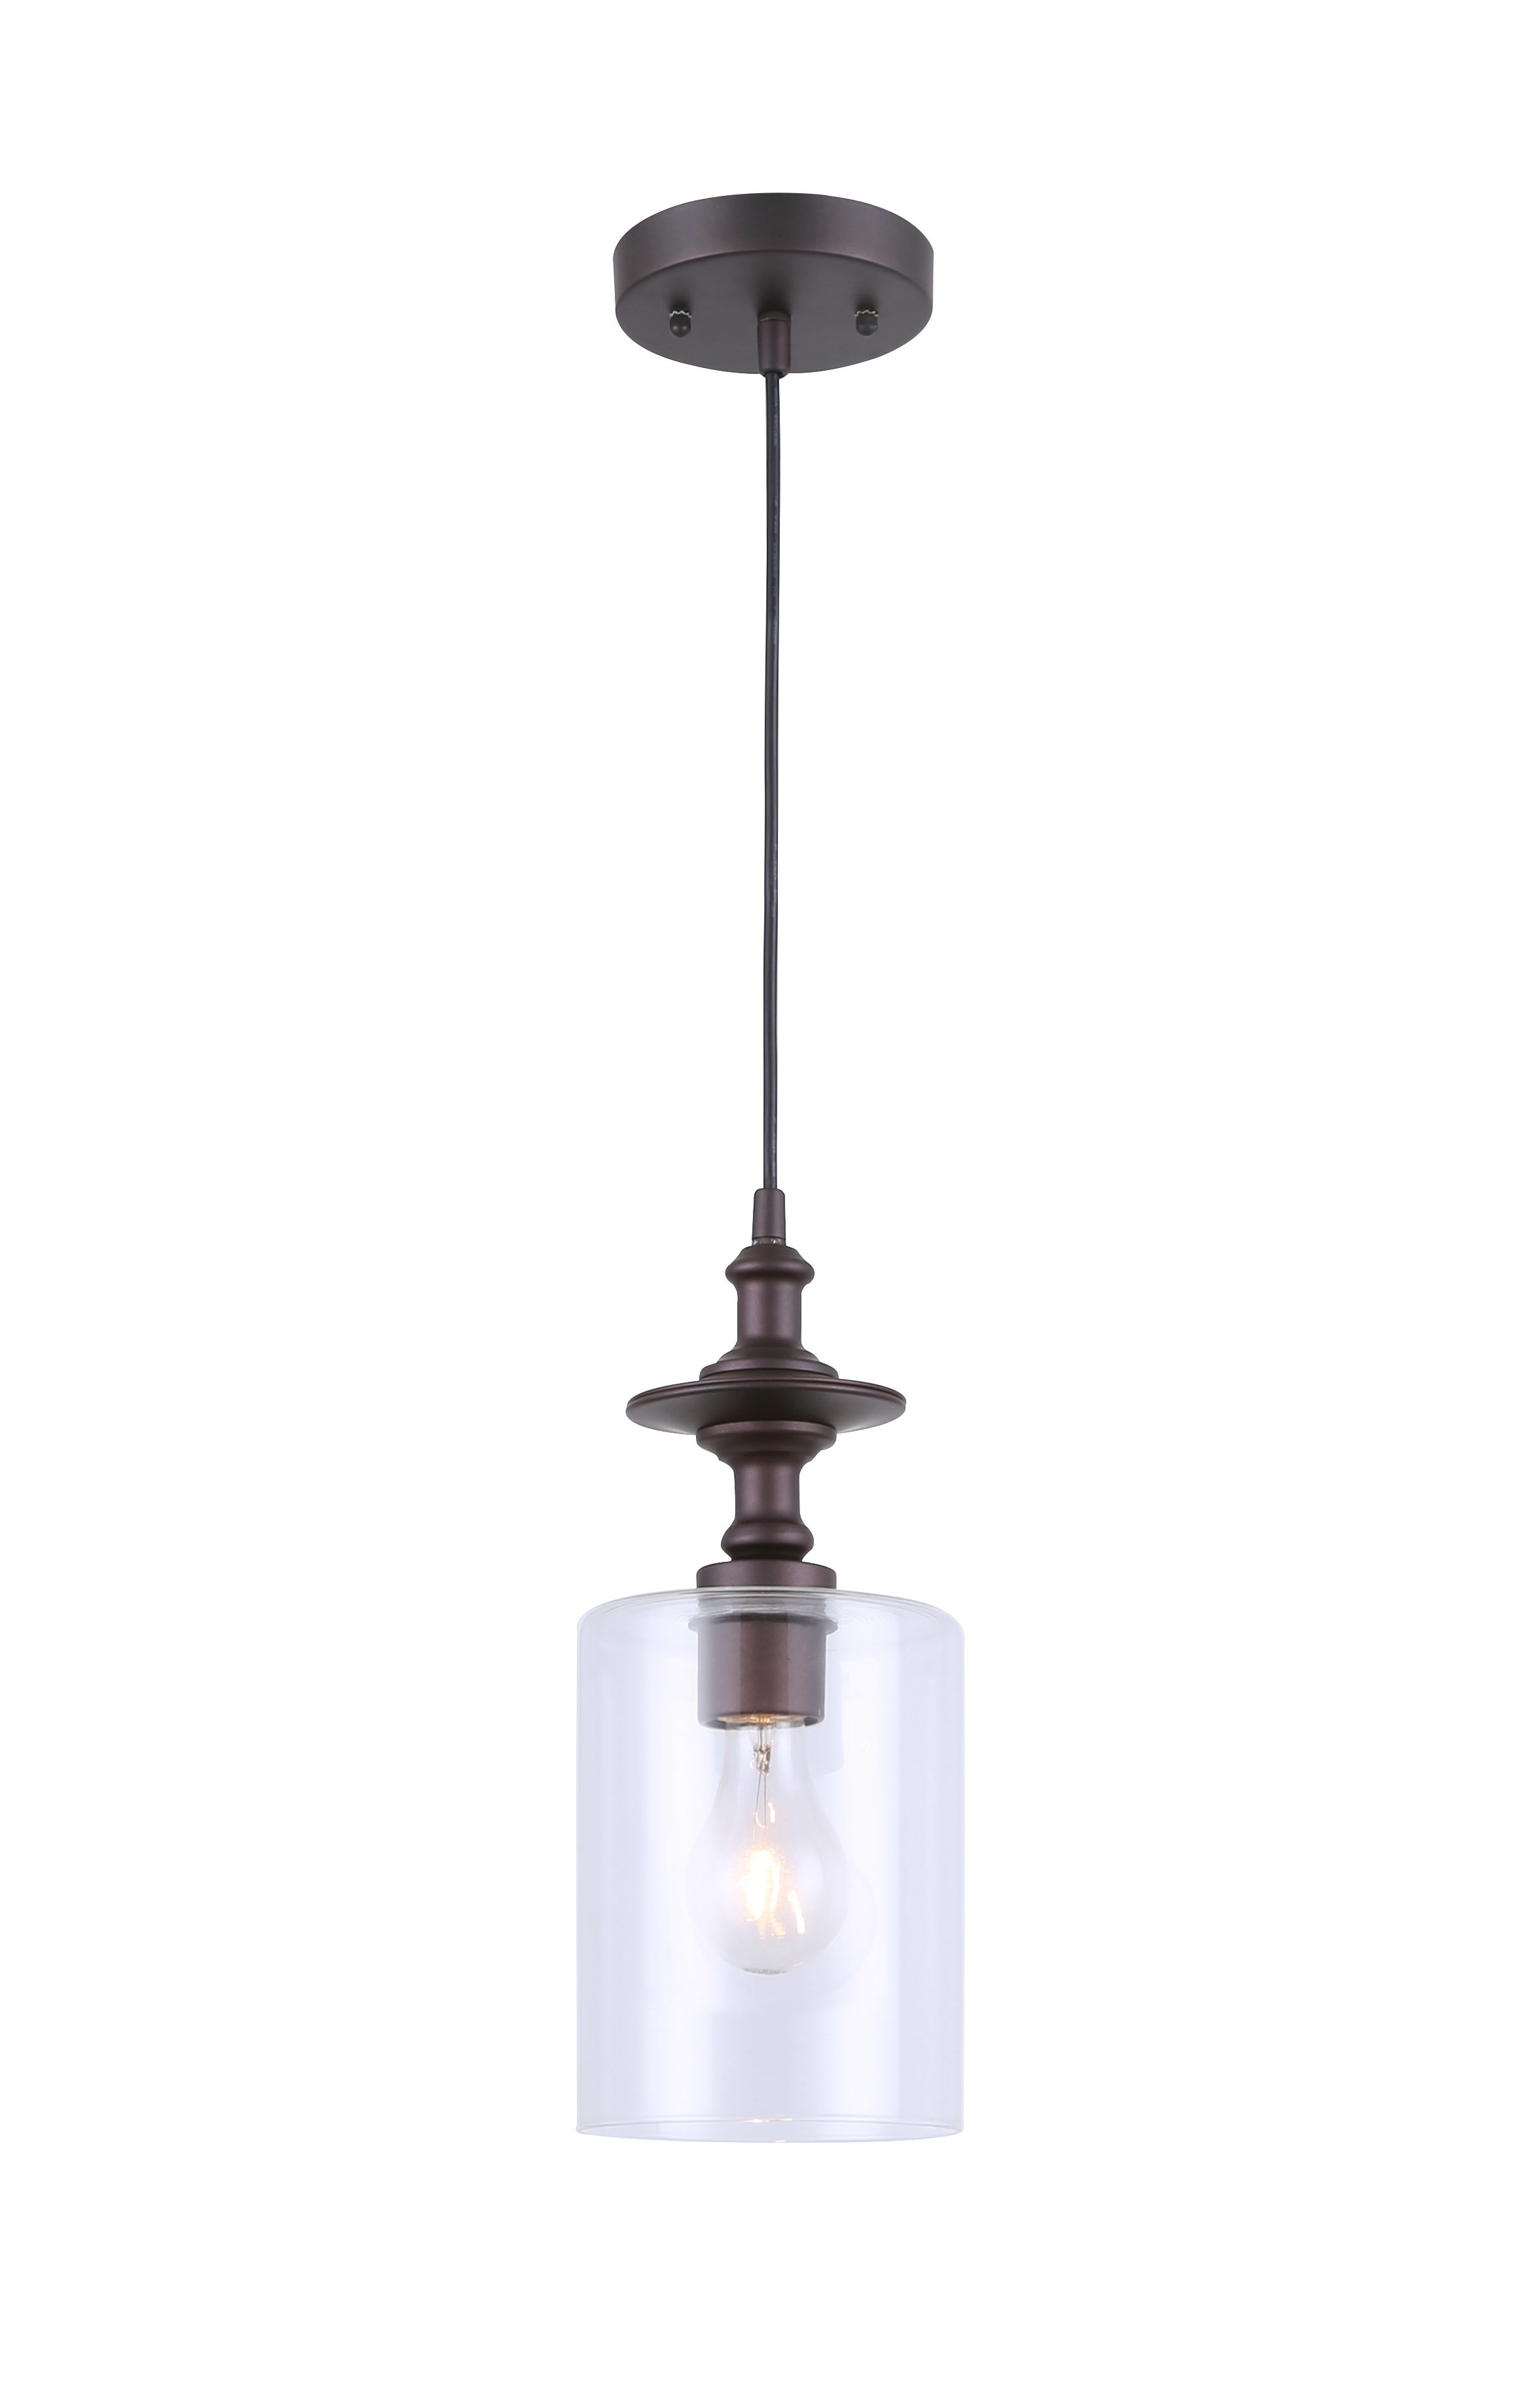 Wayfair Pertaining To 2019 Oldbury 1 Light Single Cylinder Pendants (View 17 of 20)